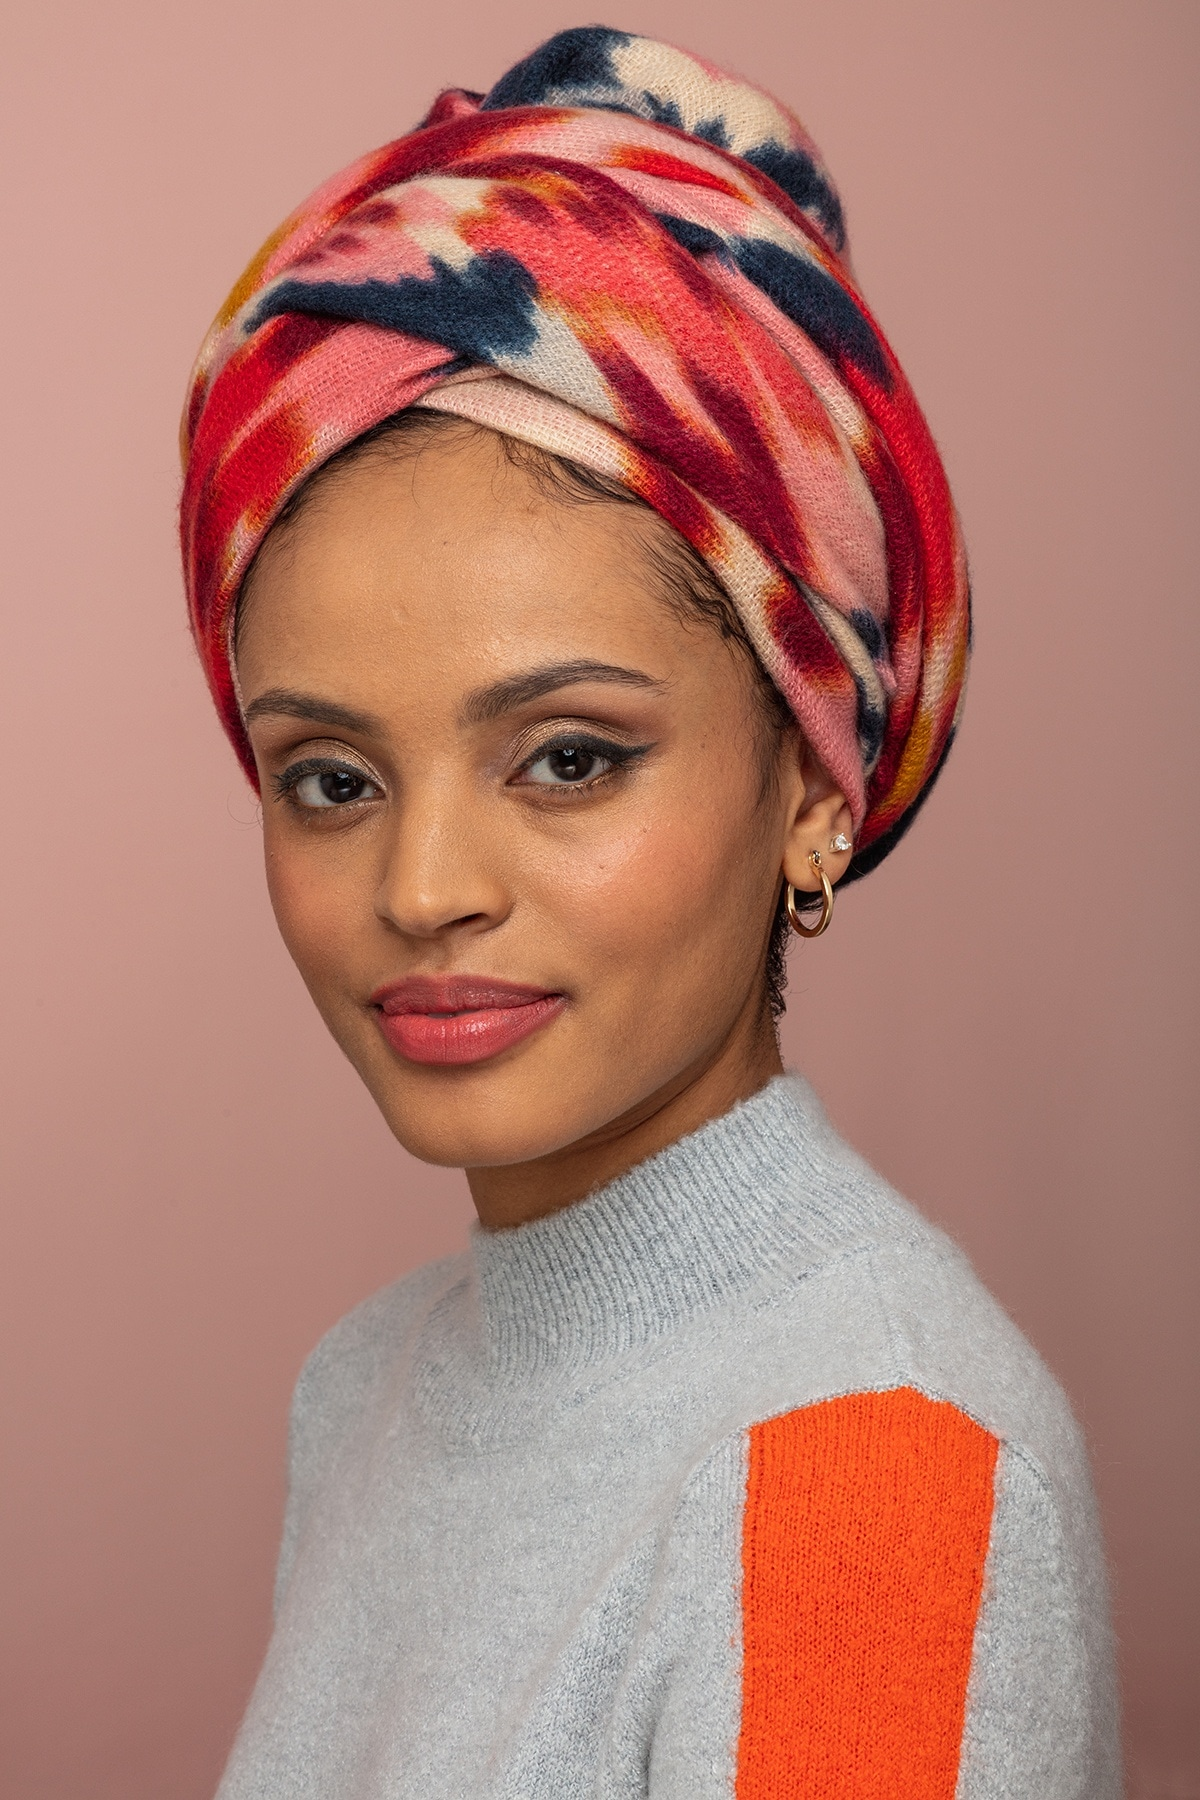 How to wear a headwrap: Woman with pattern headwrap styled in regal style.